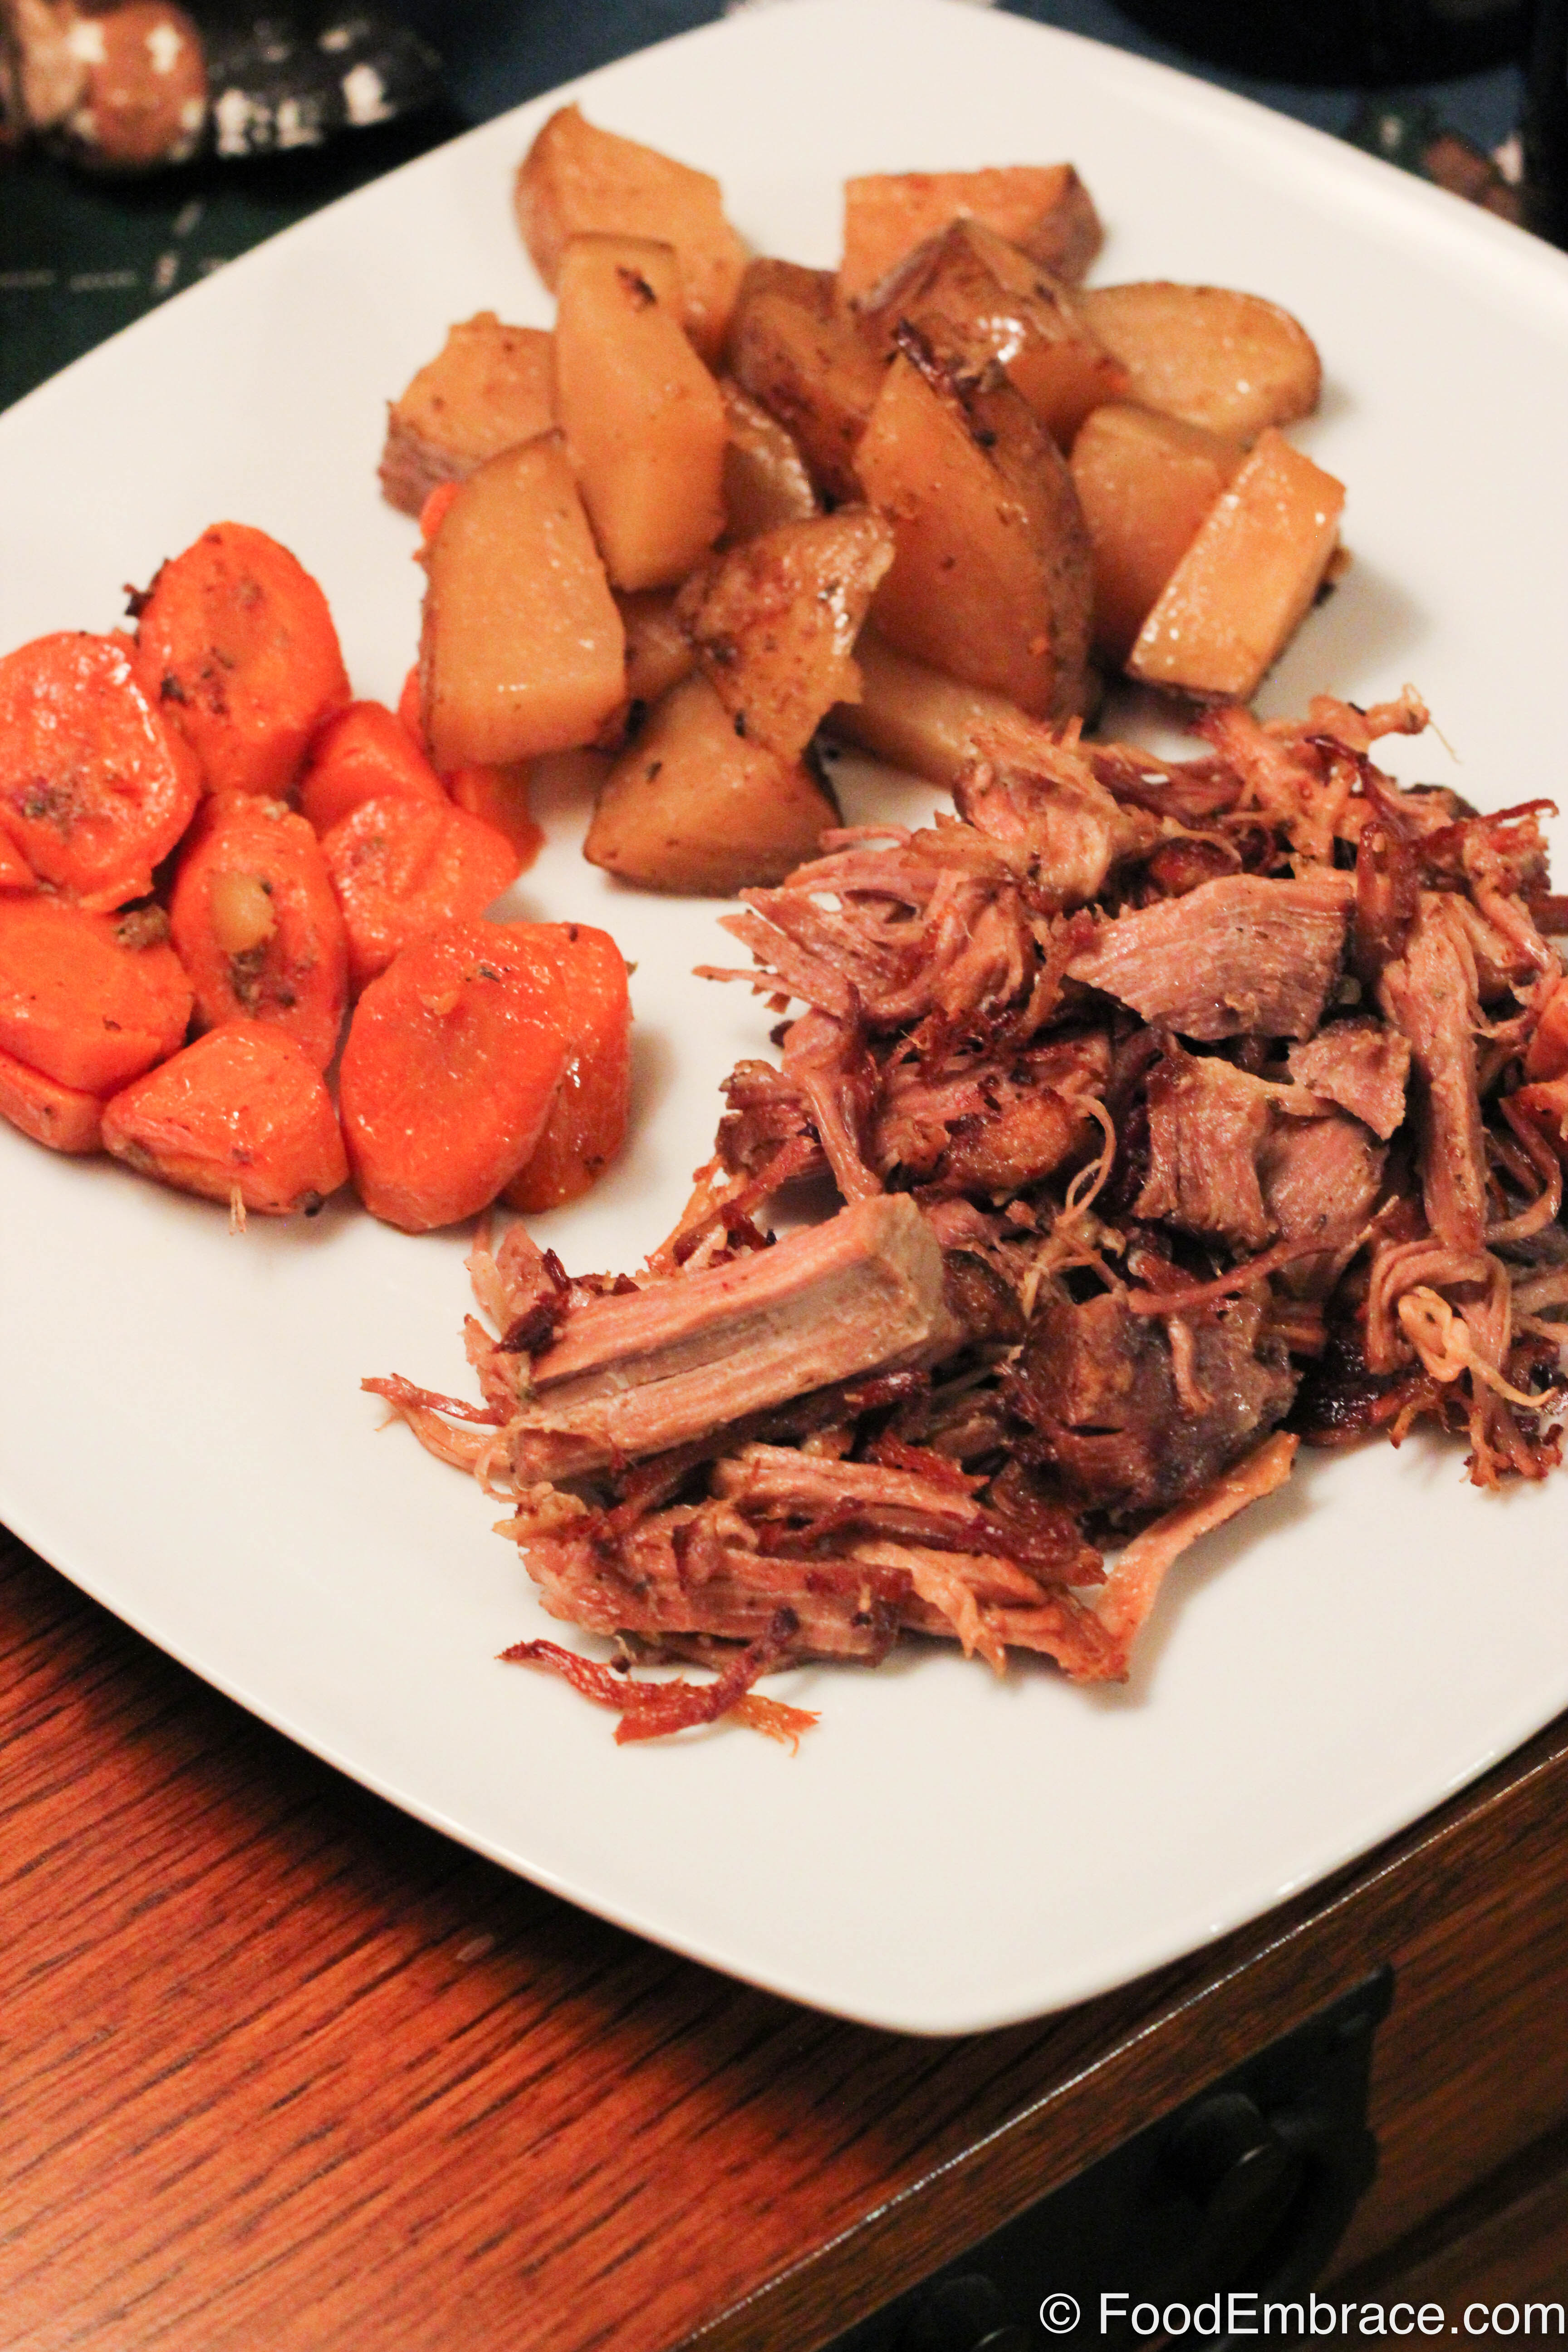 Crispy pork with potatoes and carrots.